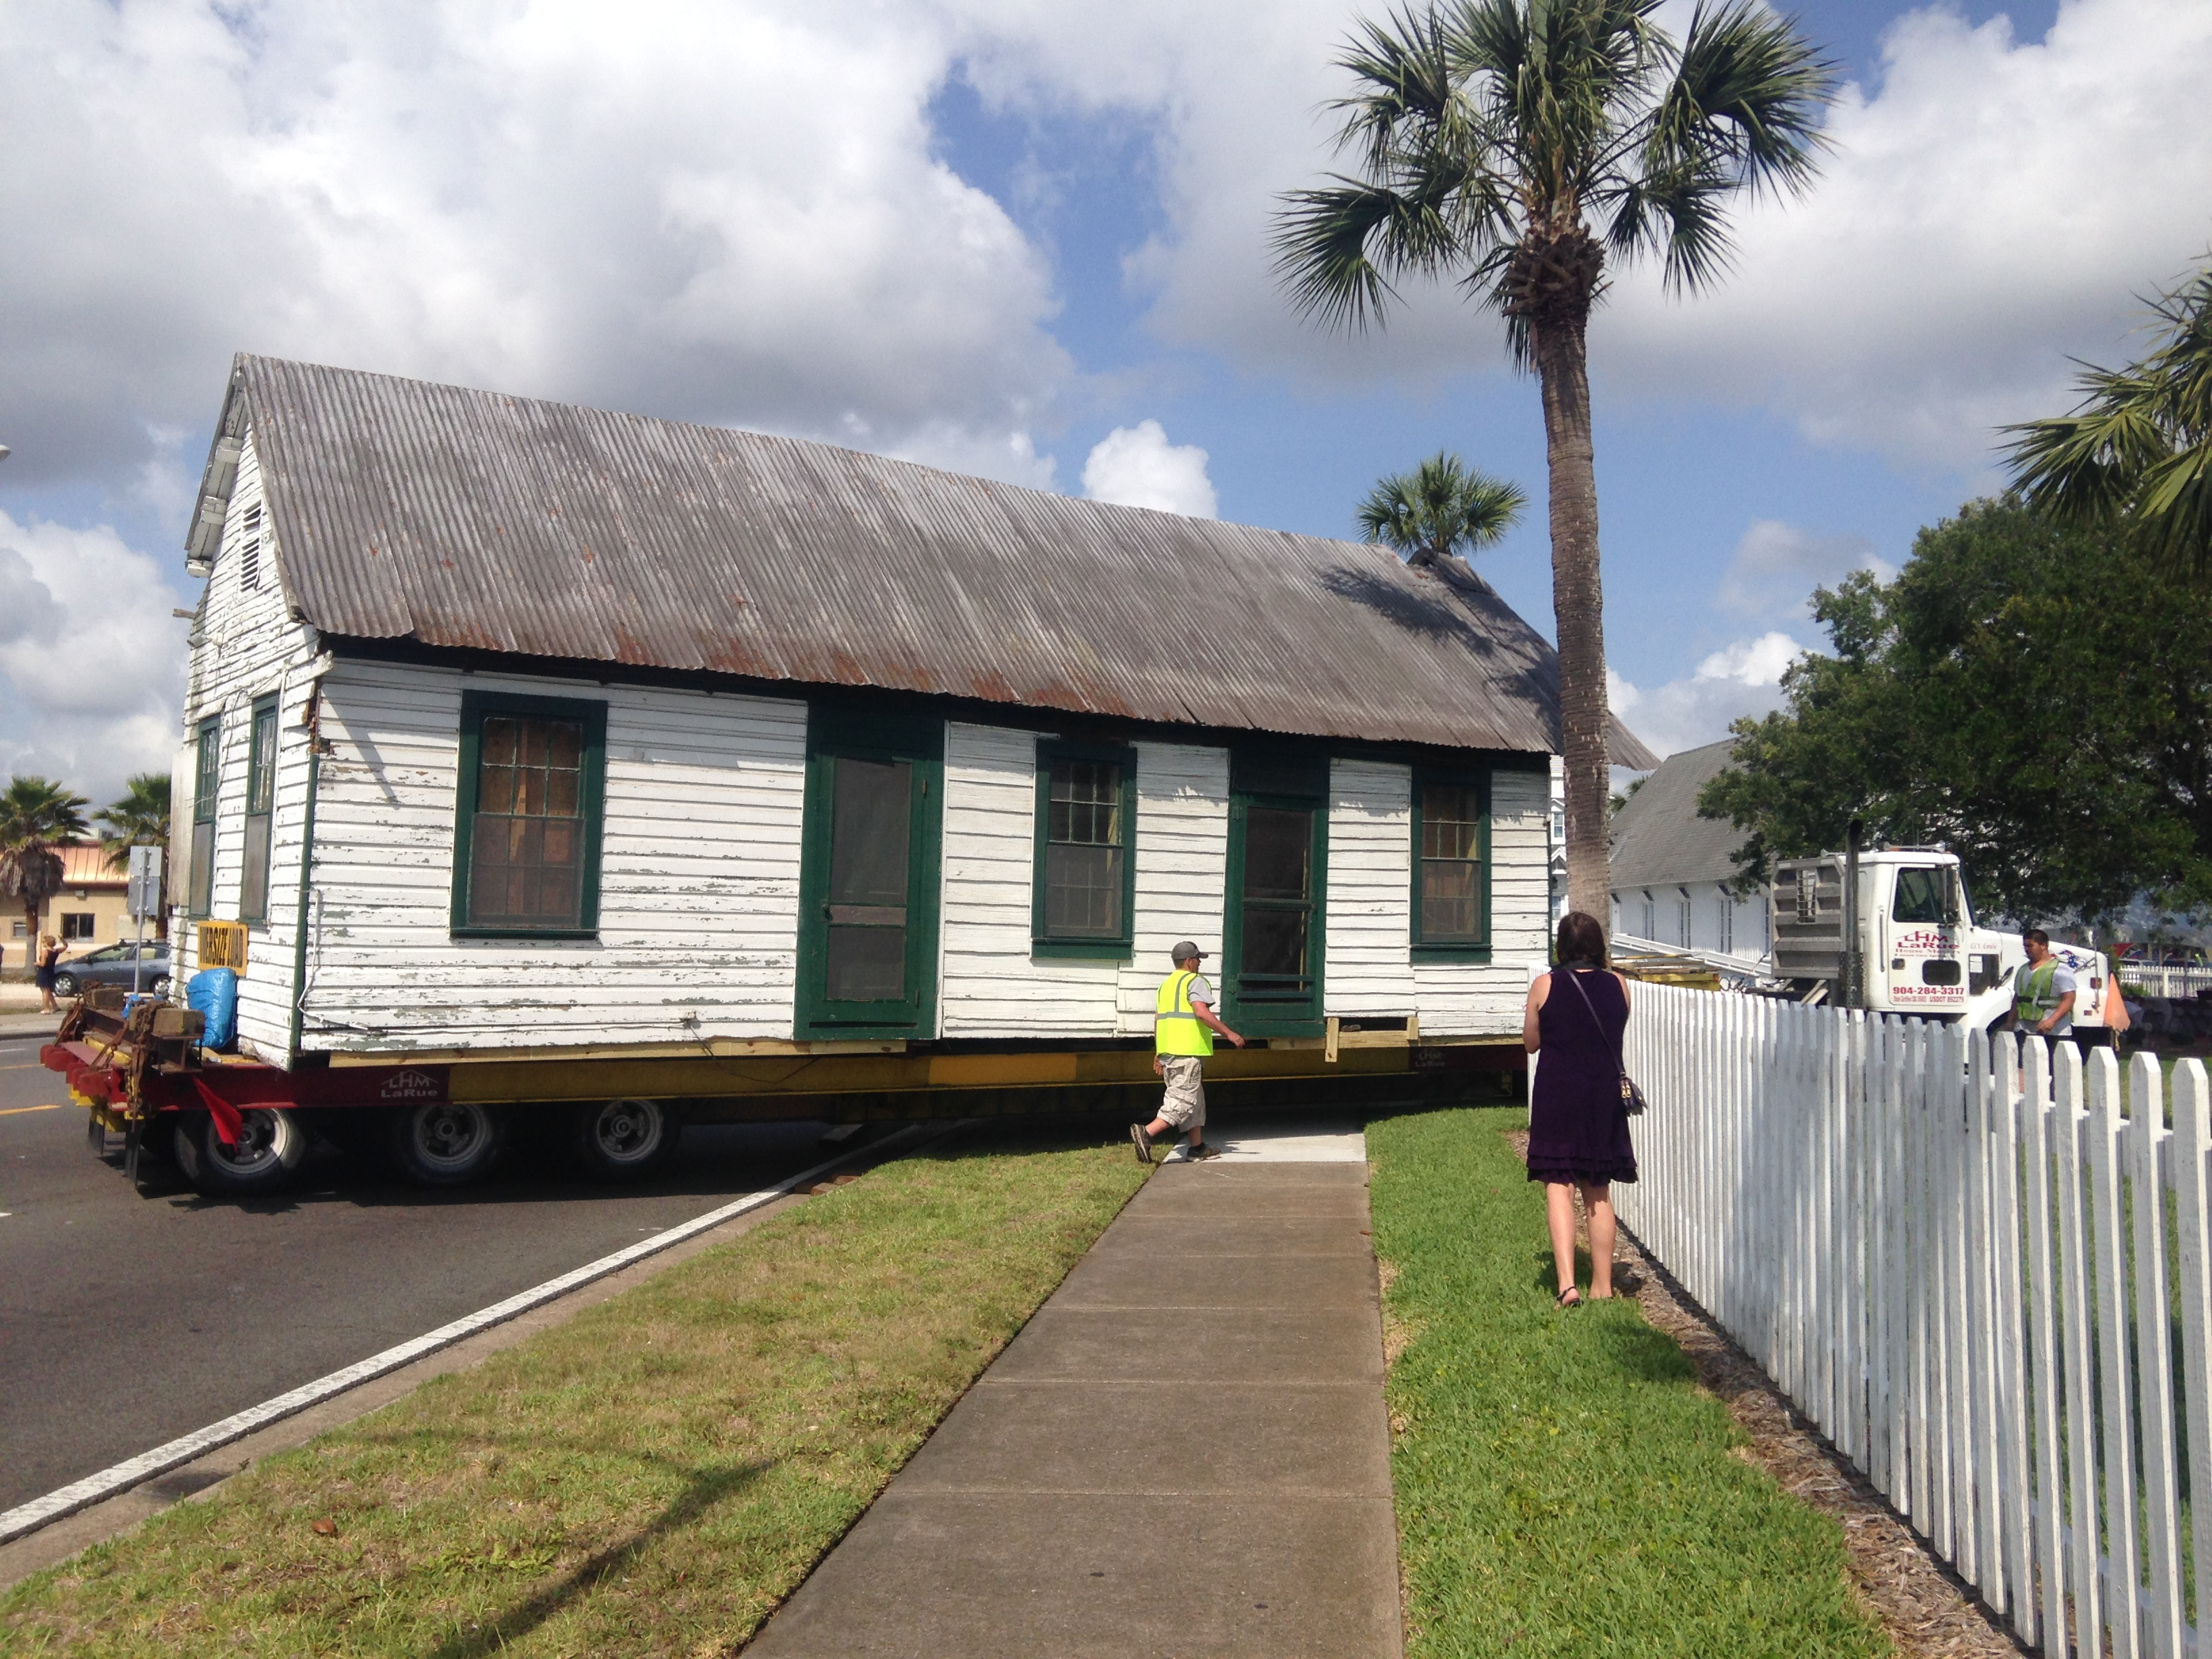 The cabin arriving at the History Park